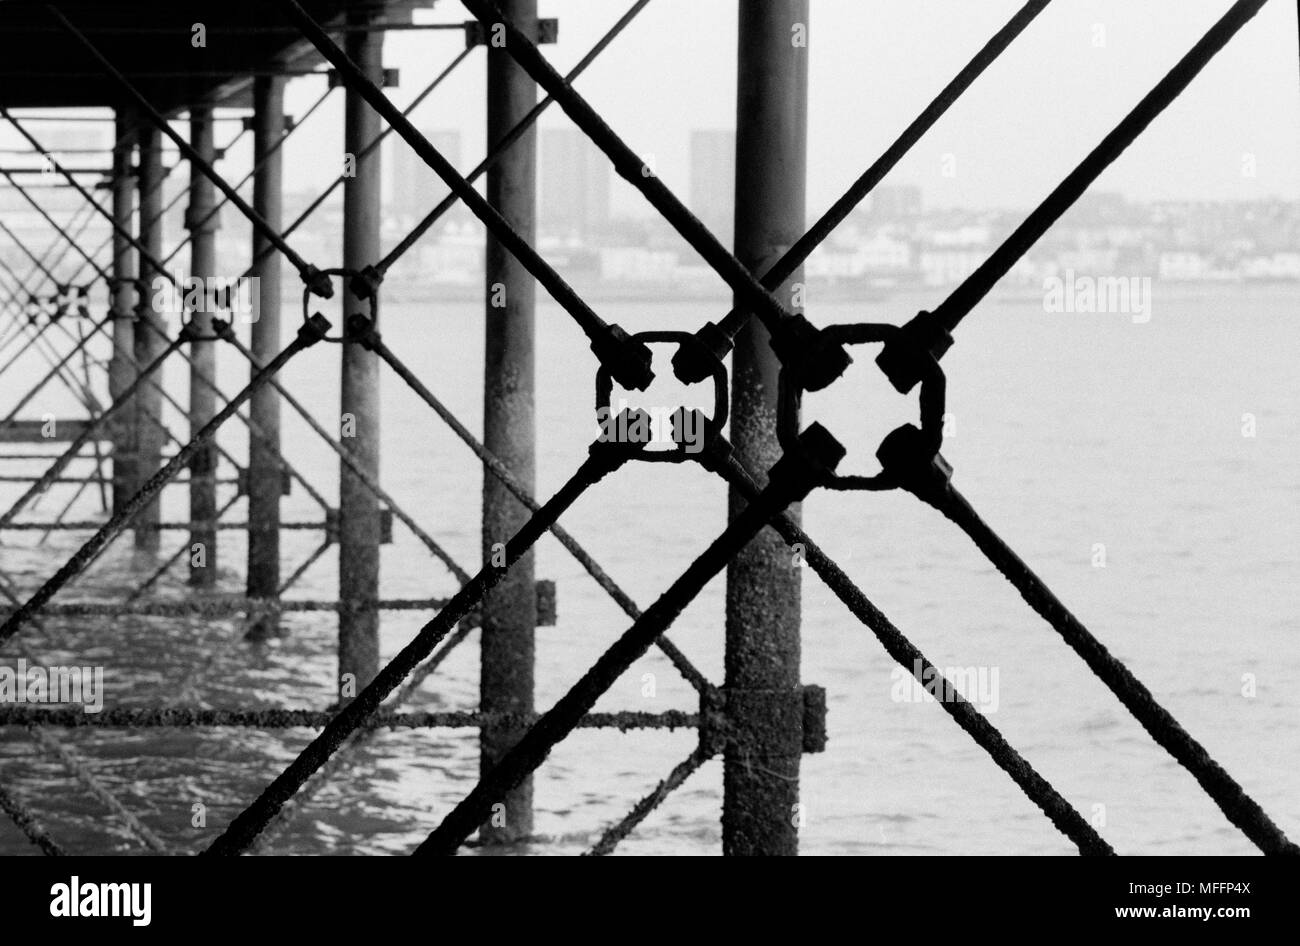 Southend Pier contruction. 2018 Showing Victorian Iron Work engineering under the pier - Stock Image